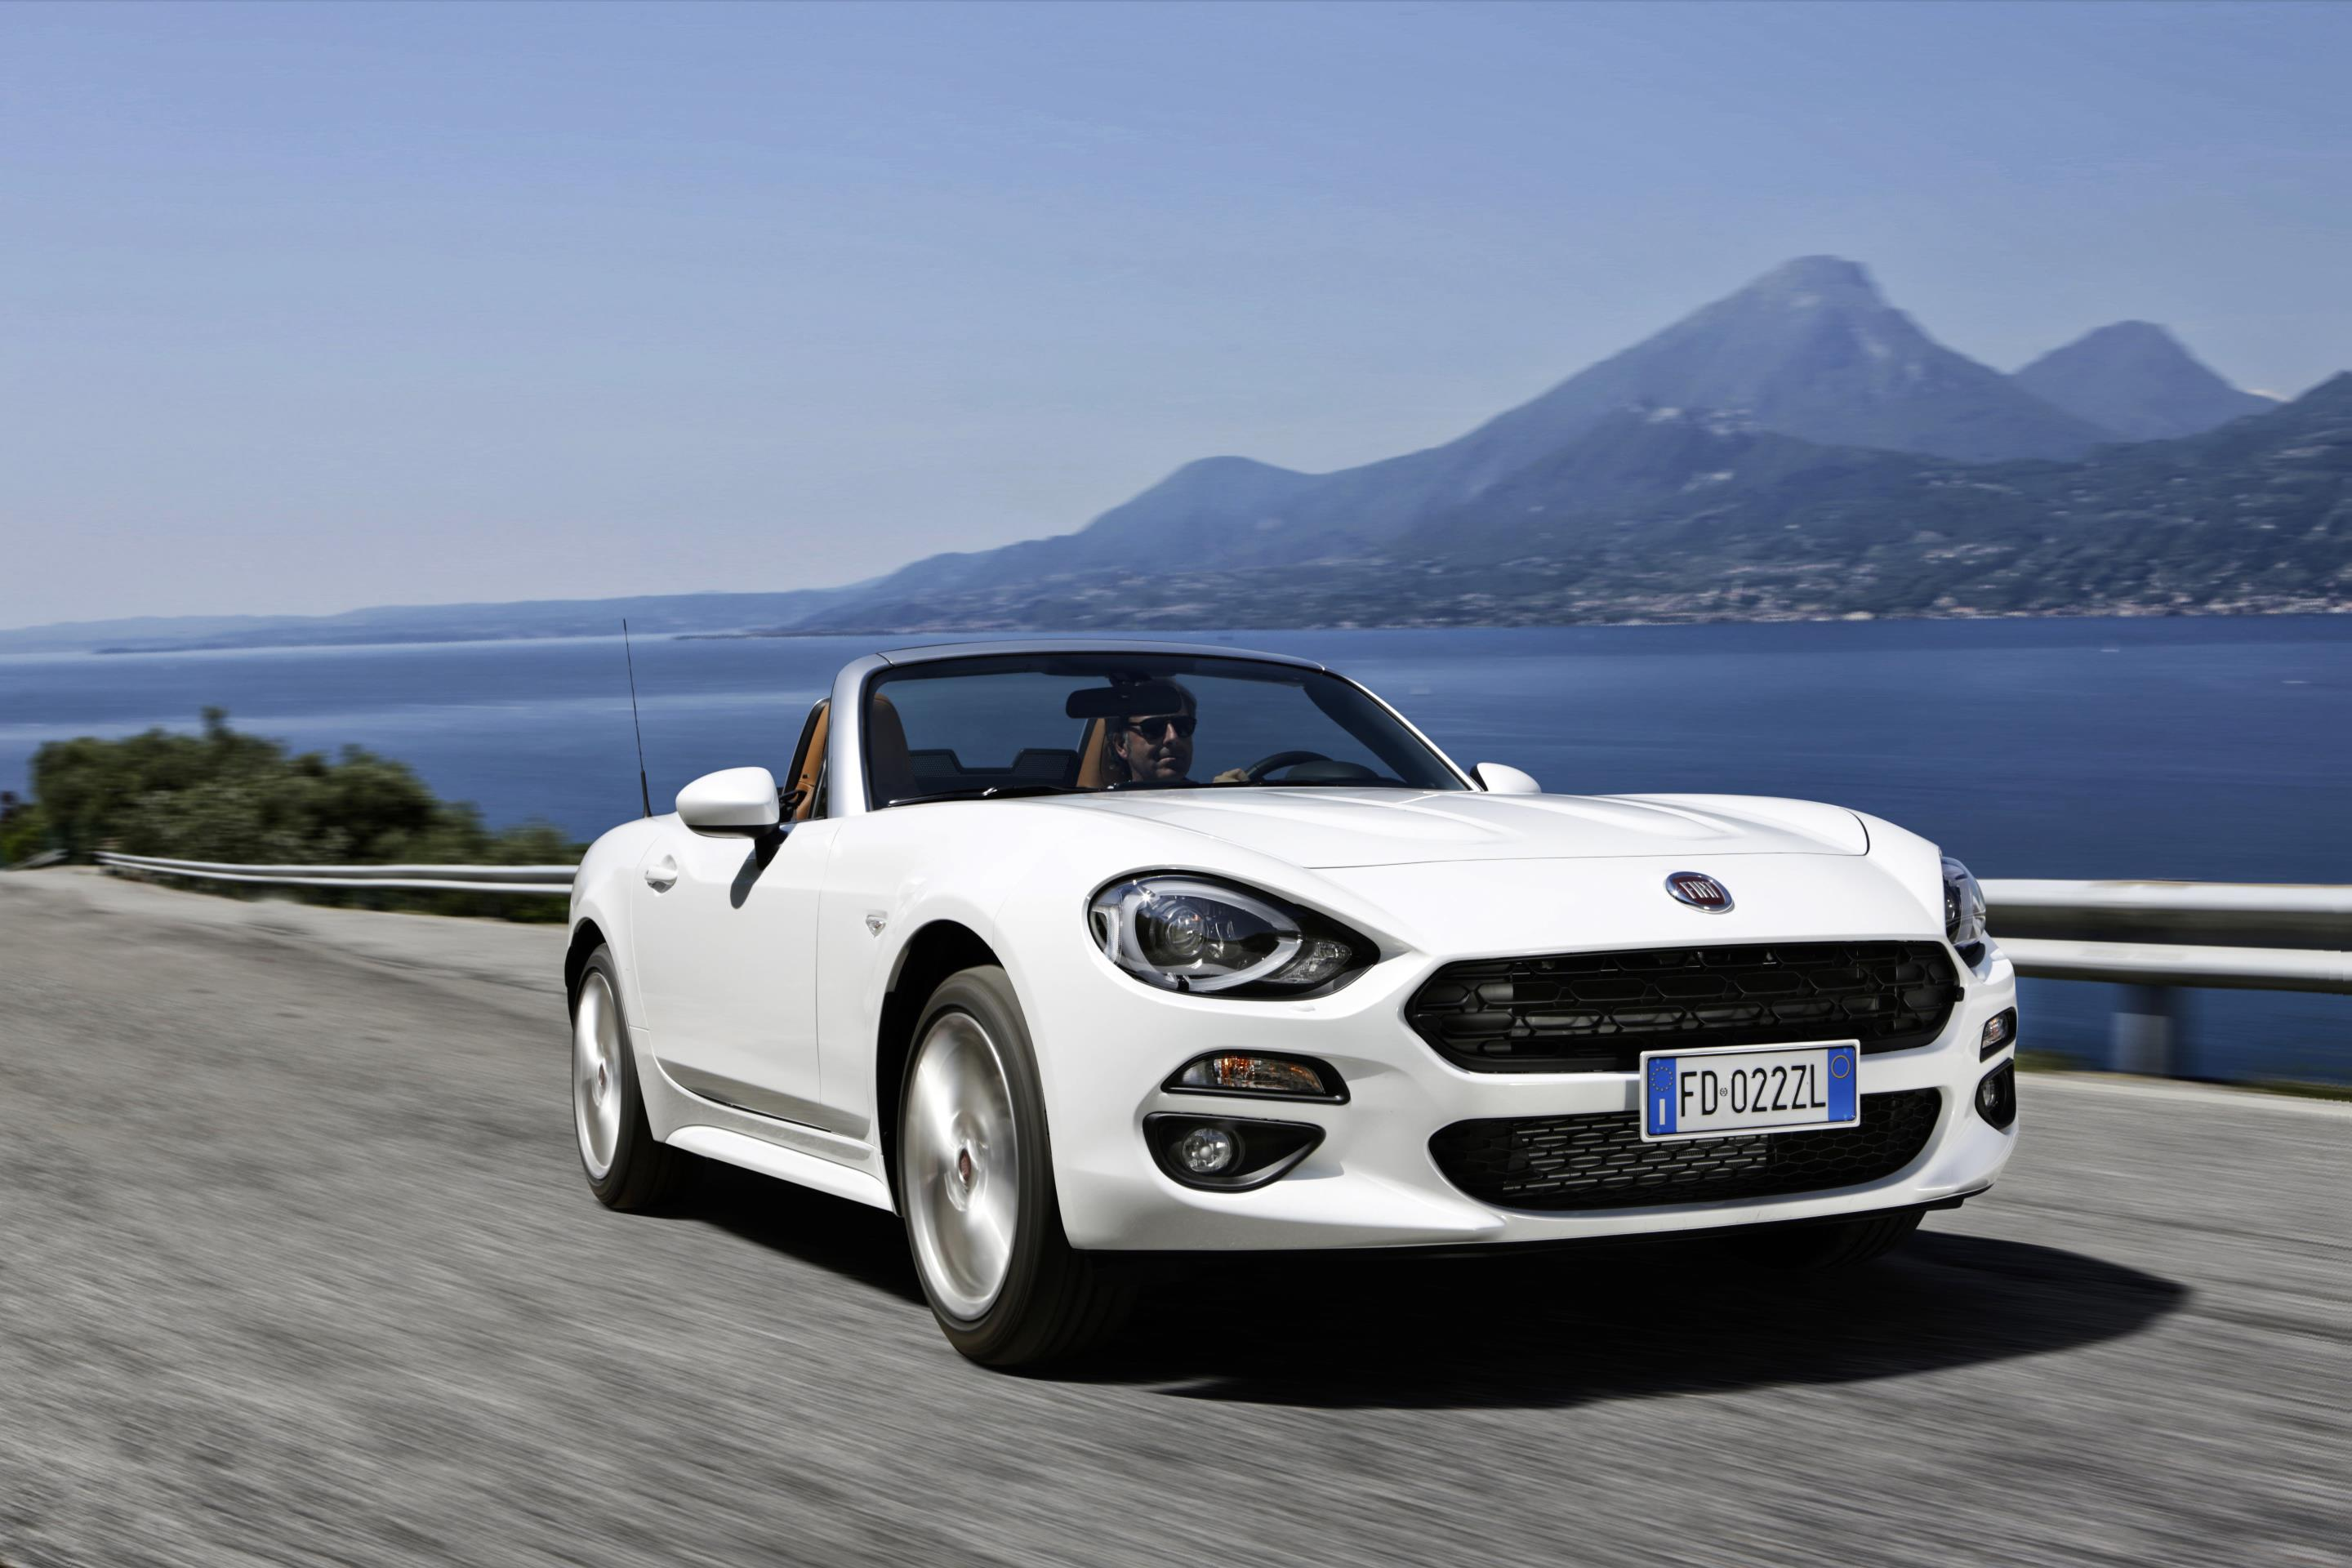 New Beetle Review >> Fiat 124 Spider Takes on Mazda MX-5, MINI Cooper and VW Beetle Convertible - autoevolution